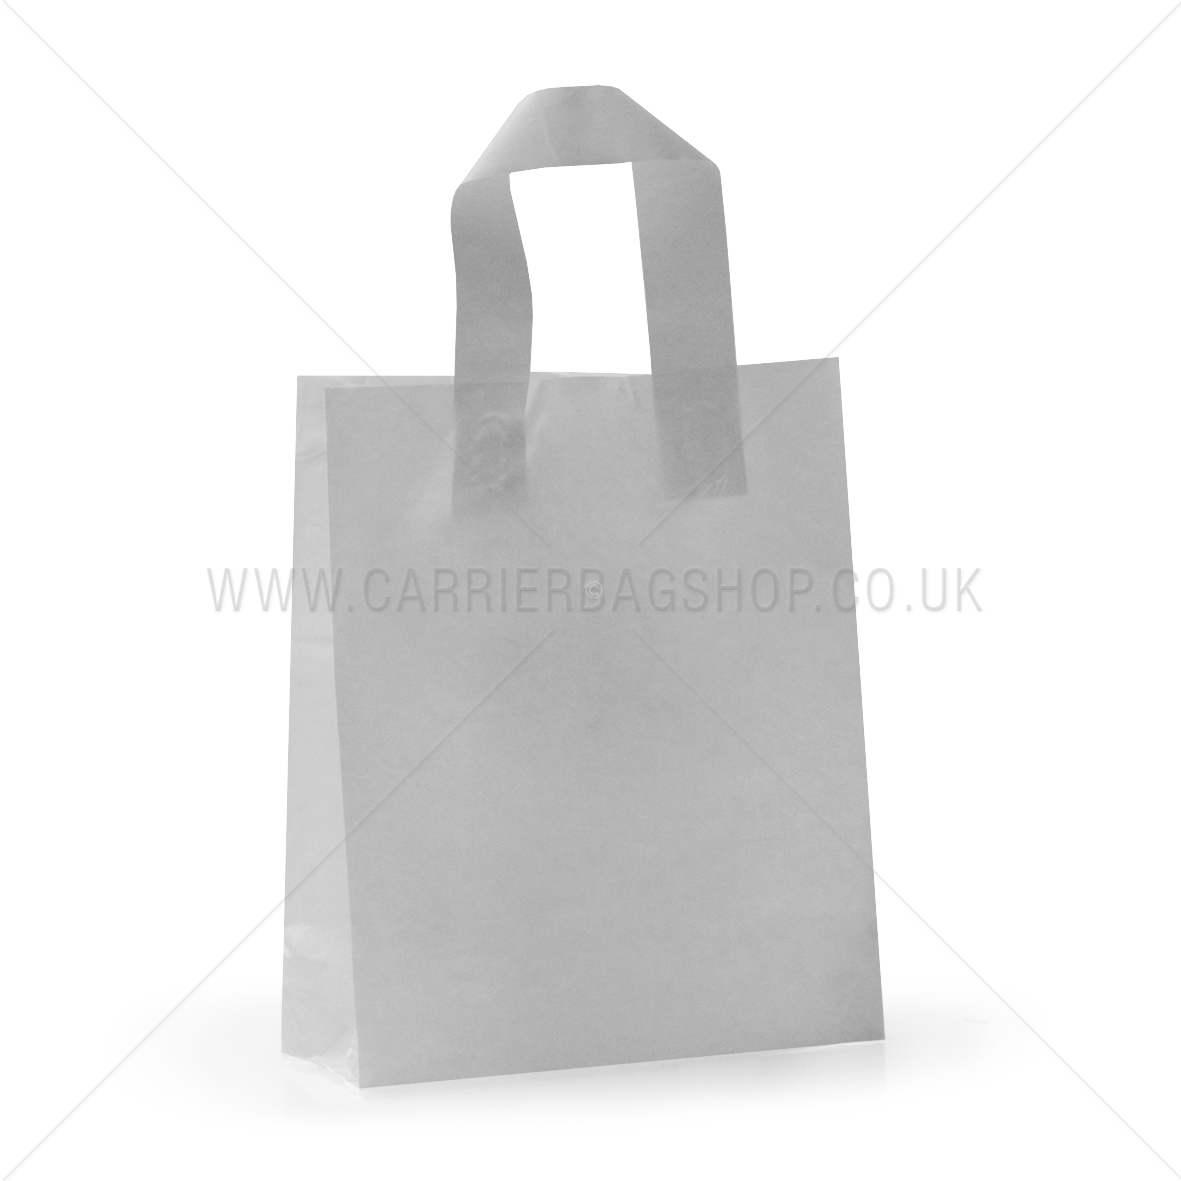 what shop uses a white carrier bags with red hamdles